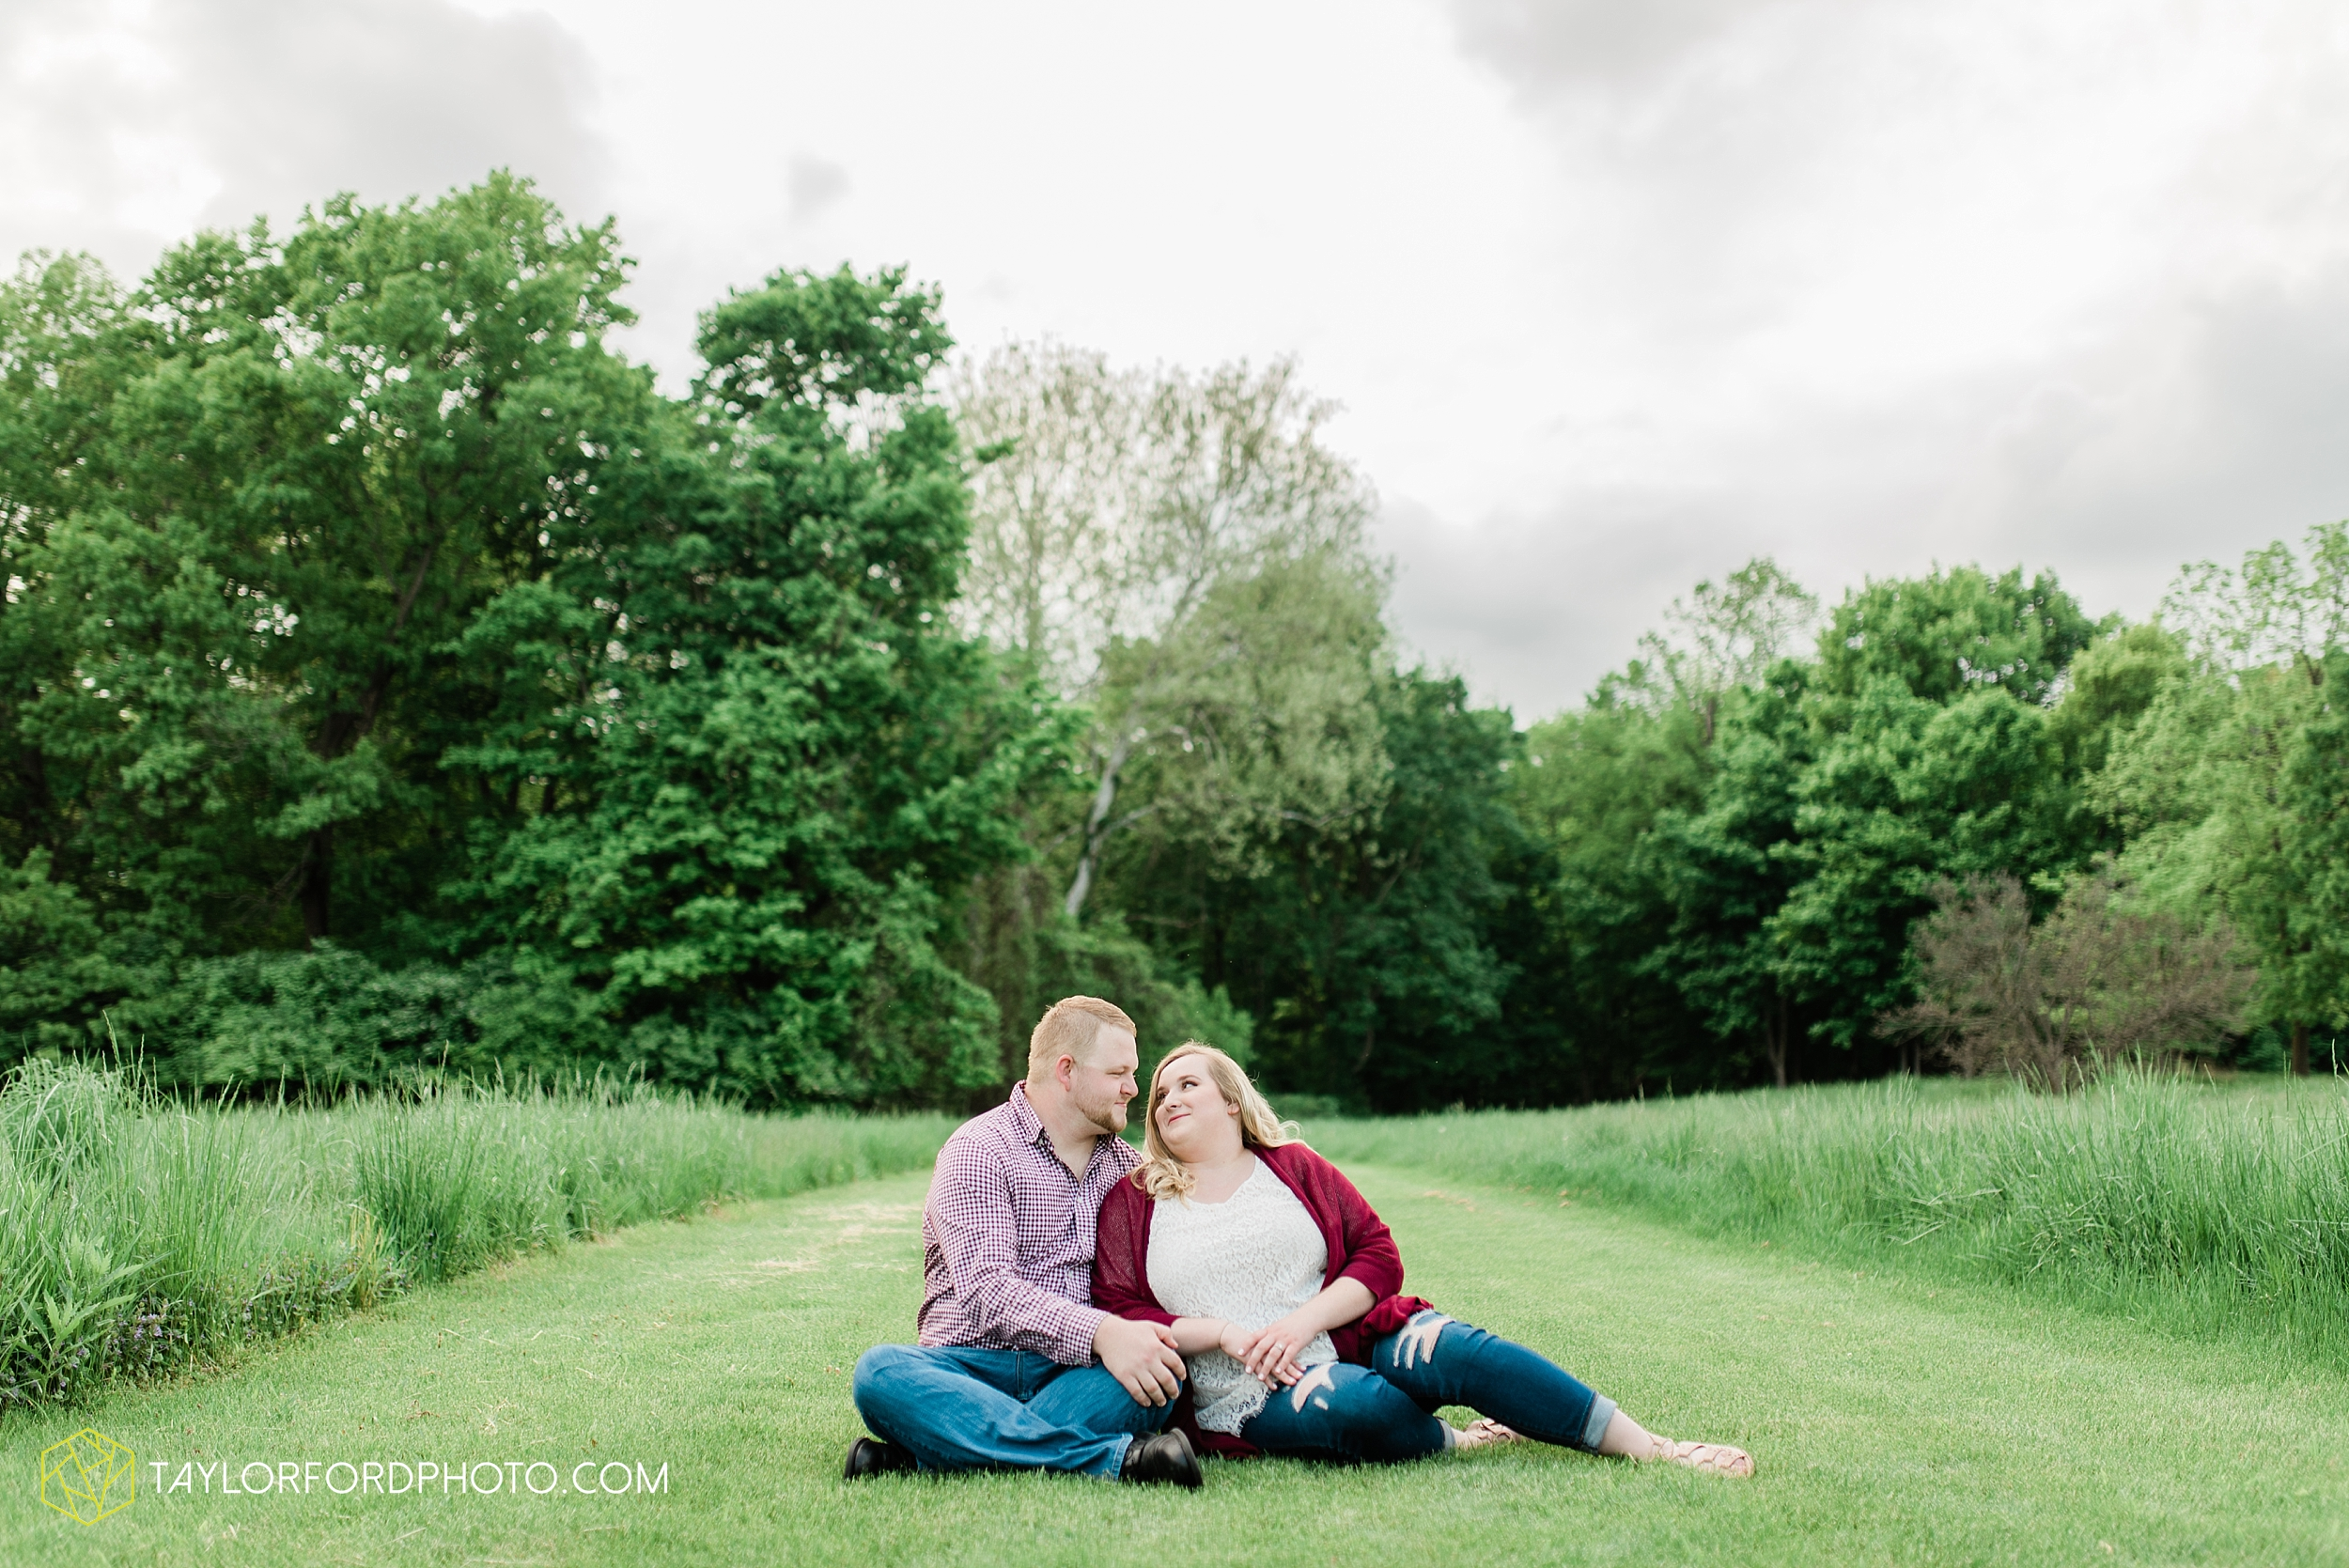 downtown-ipfw-fort-wayne-indiana-engagement-photographer-Taylor-Ford-Photography_7498.jpg